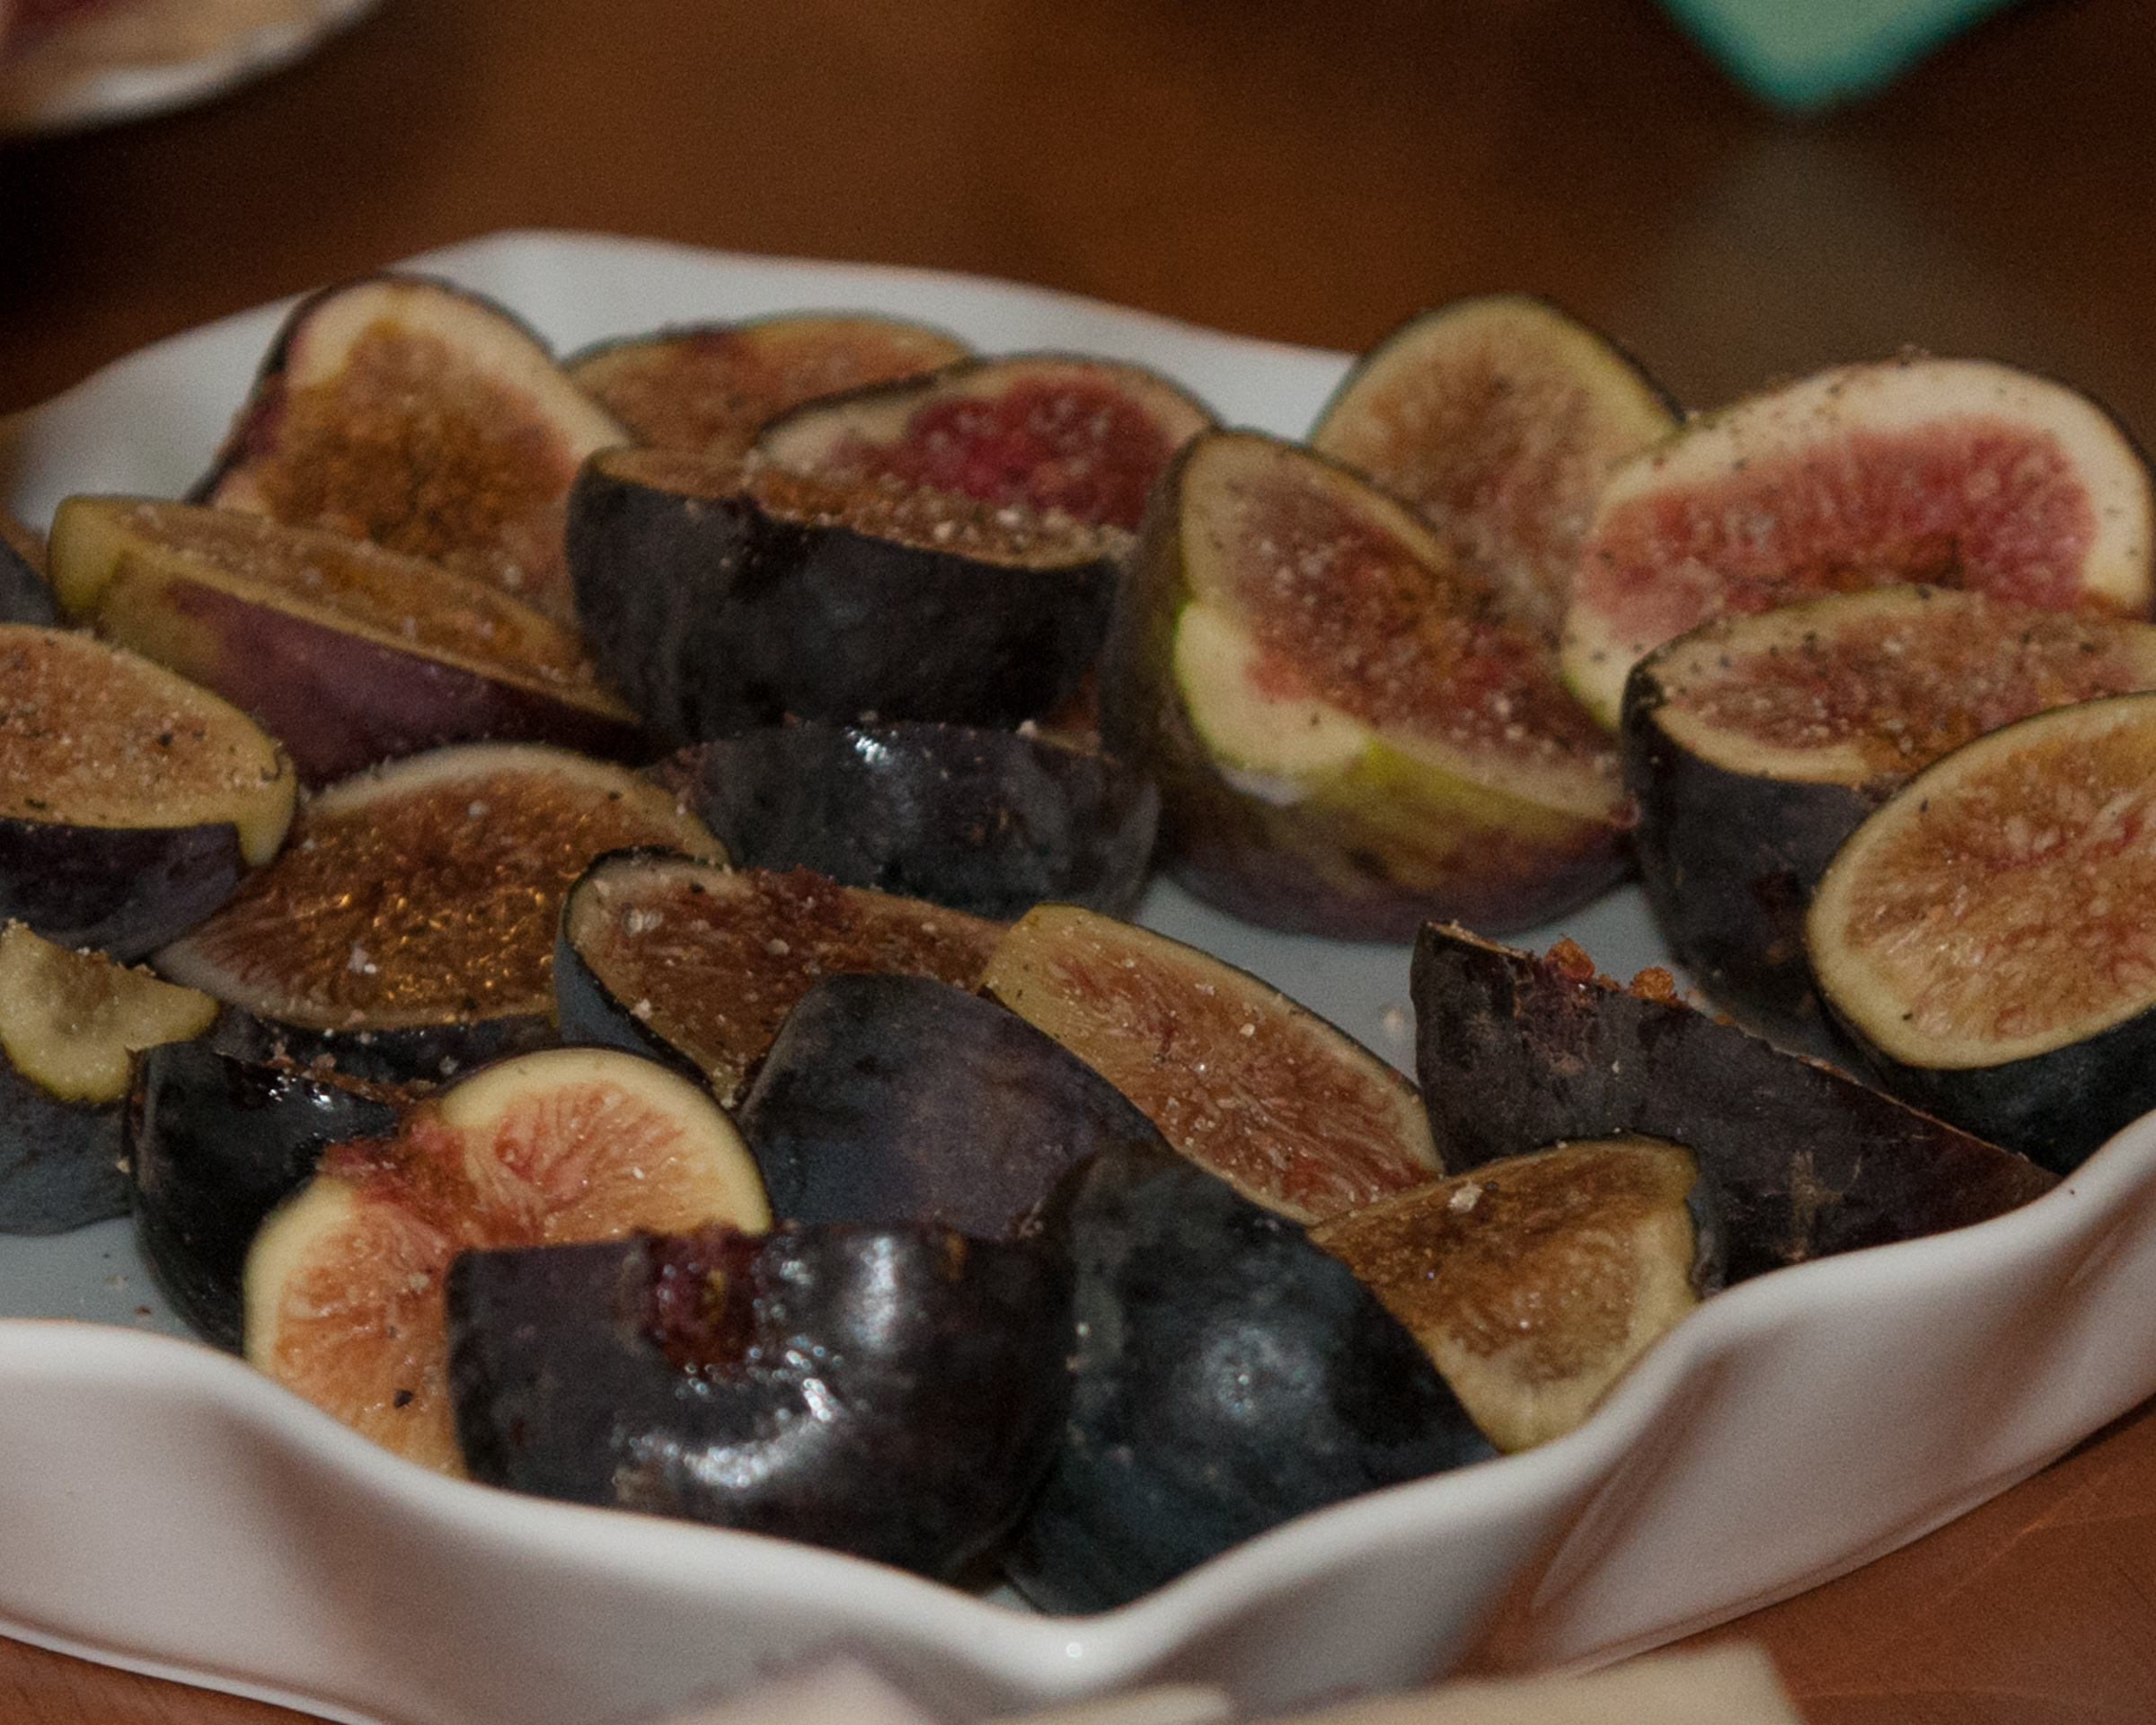 Fresh figs served with goat's cheese